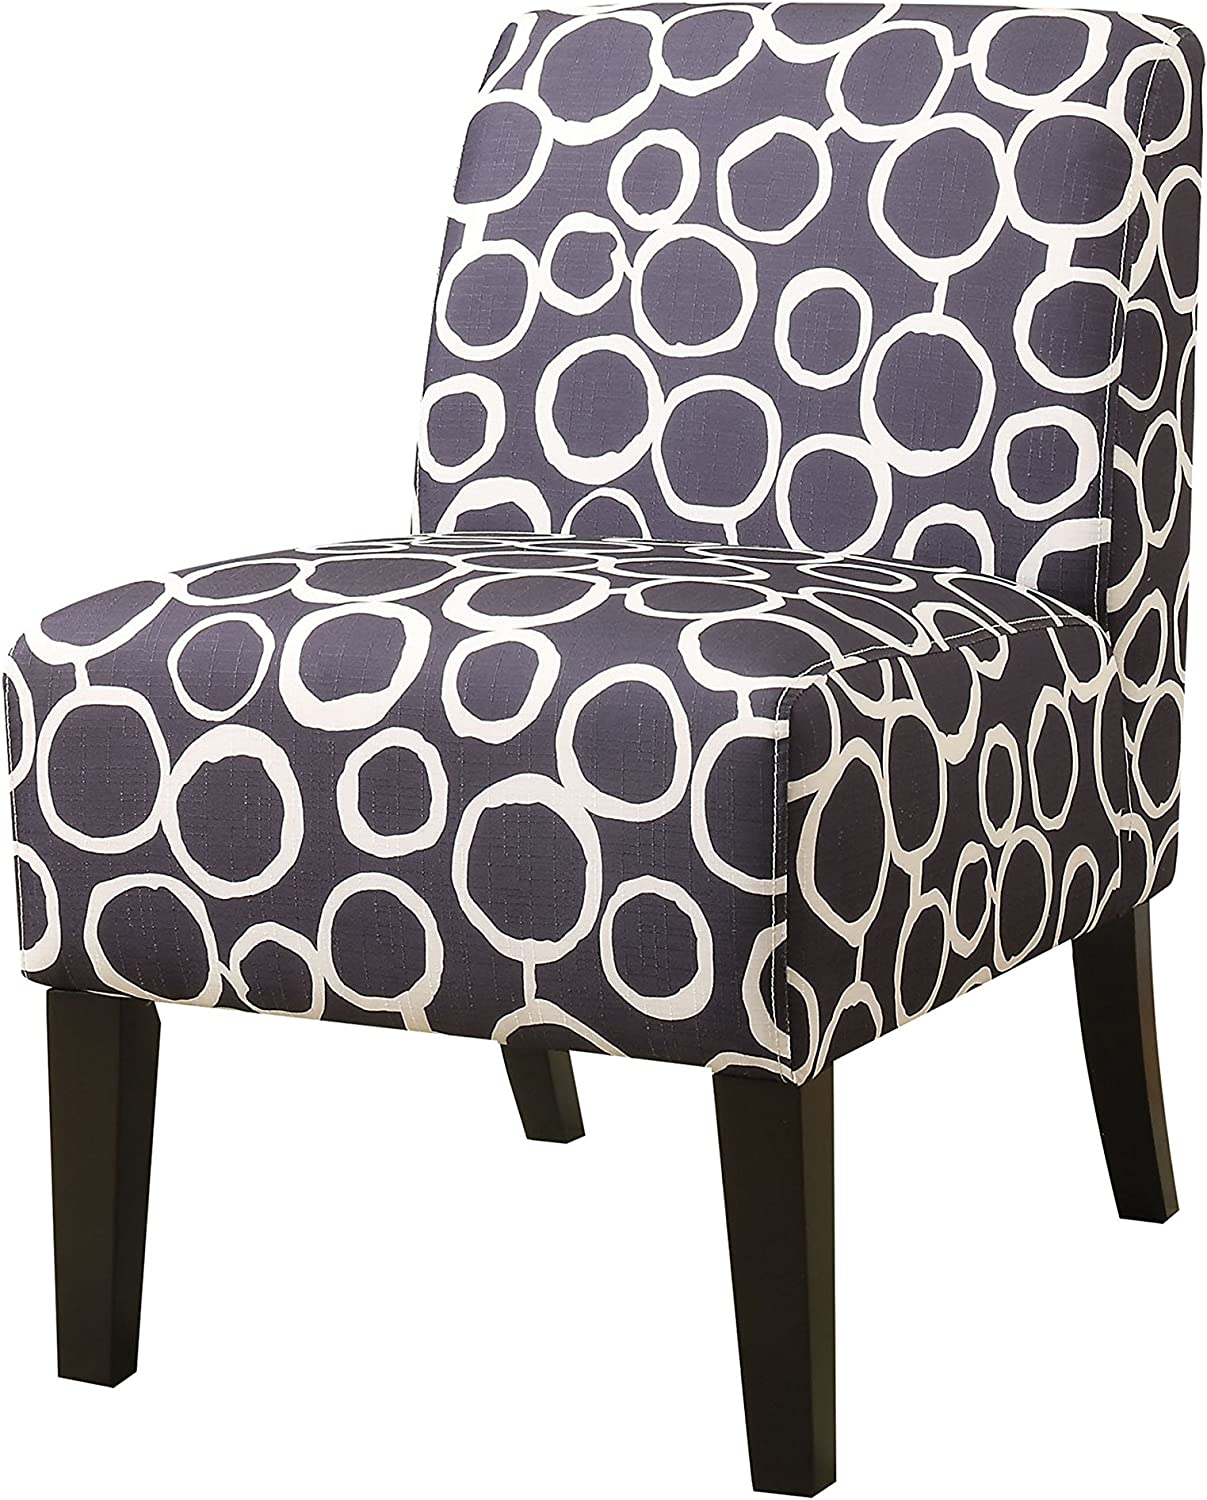 ACME Furniture 59507 Ollano Accent Chair, Pattern Fabric